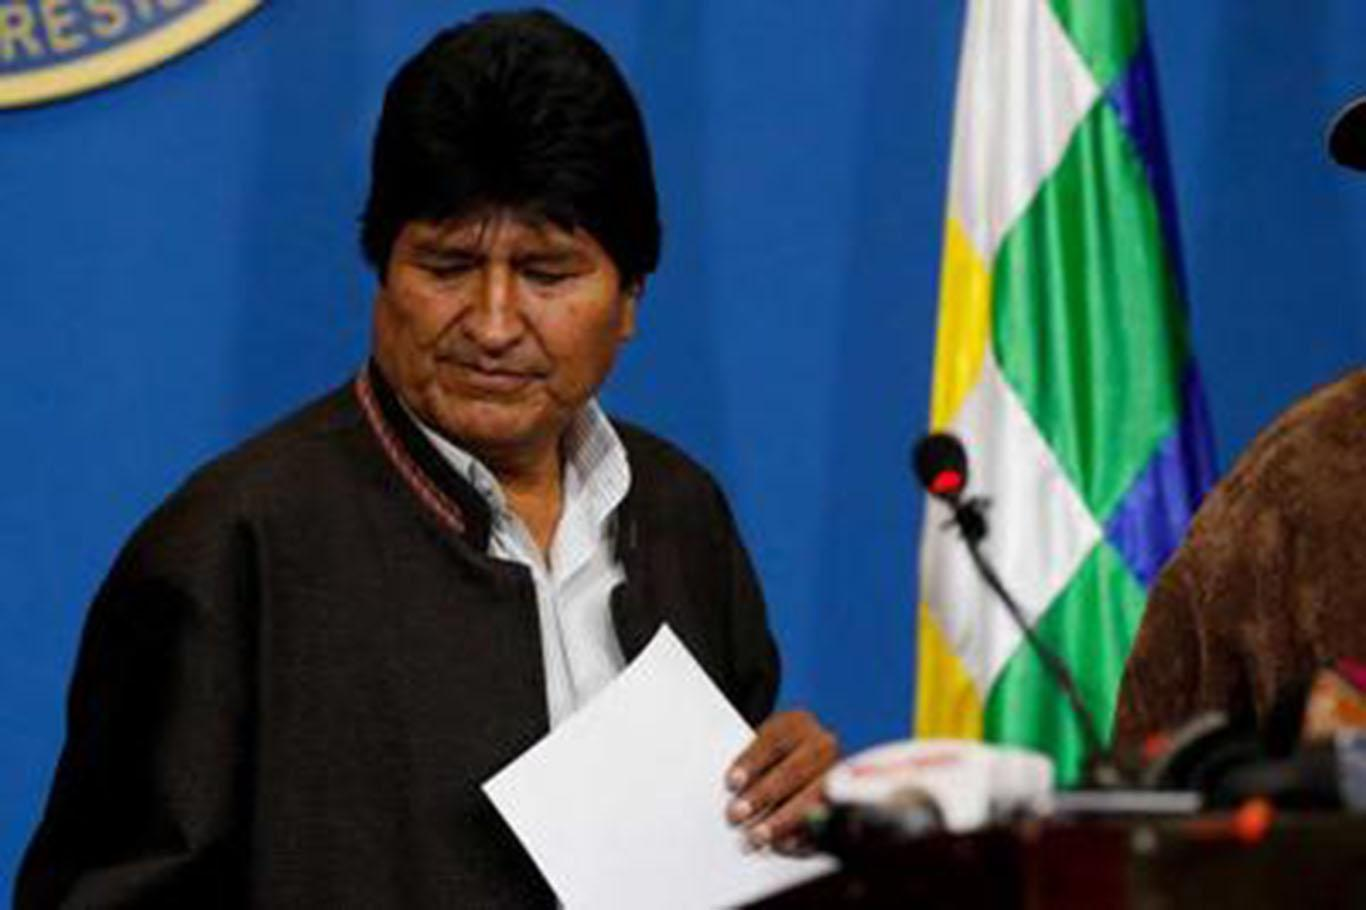 Arrest warrant to be issued against Morales